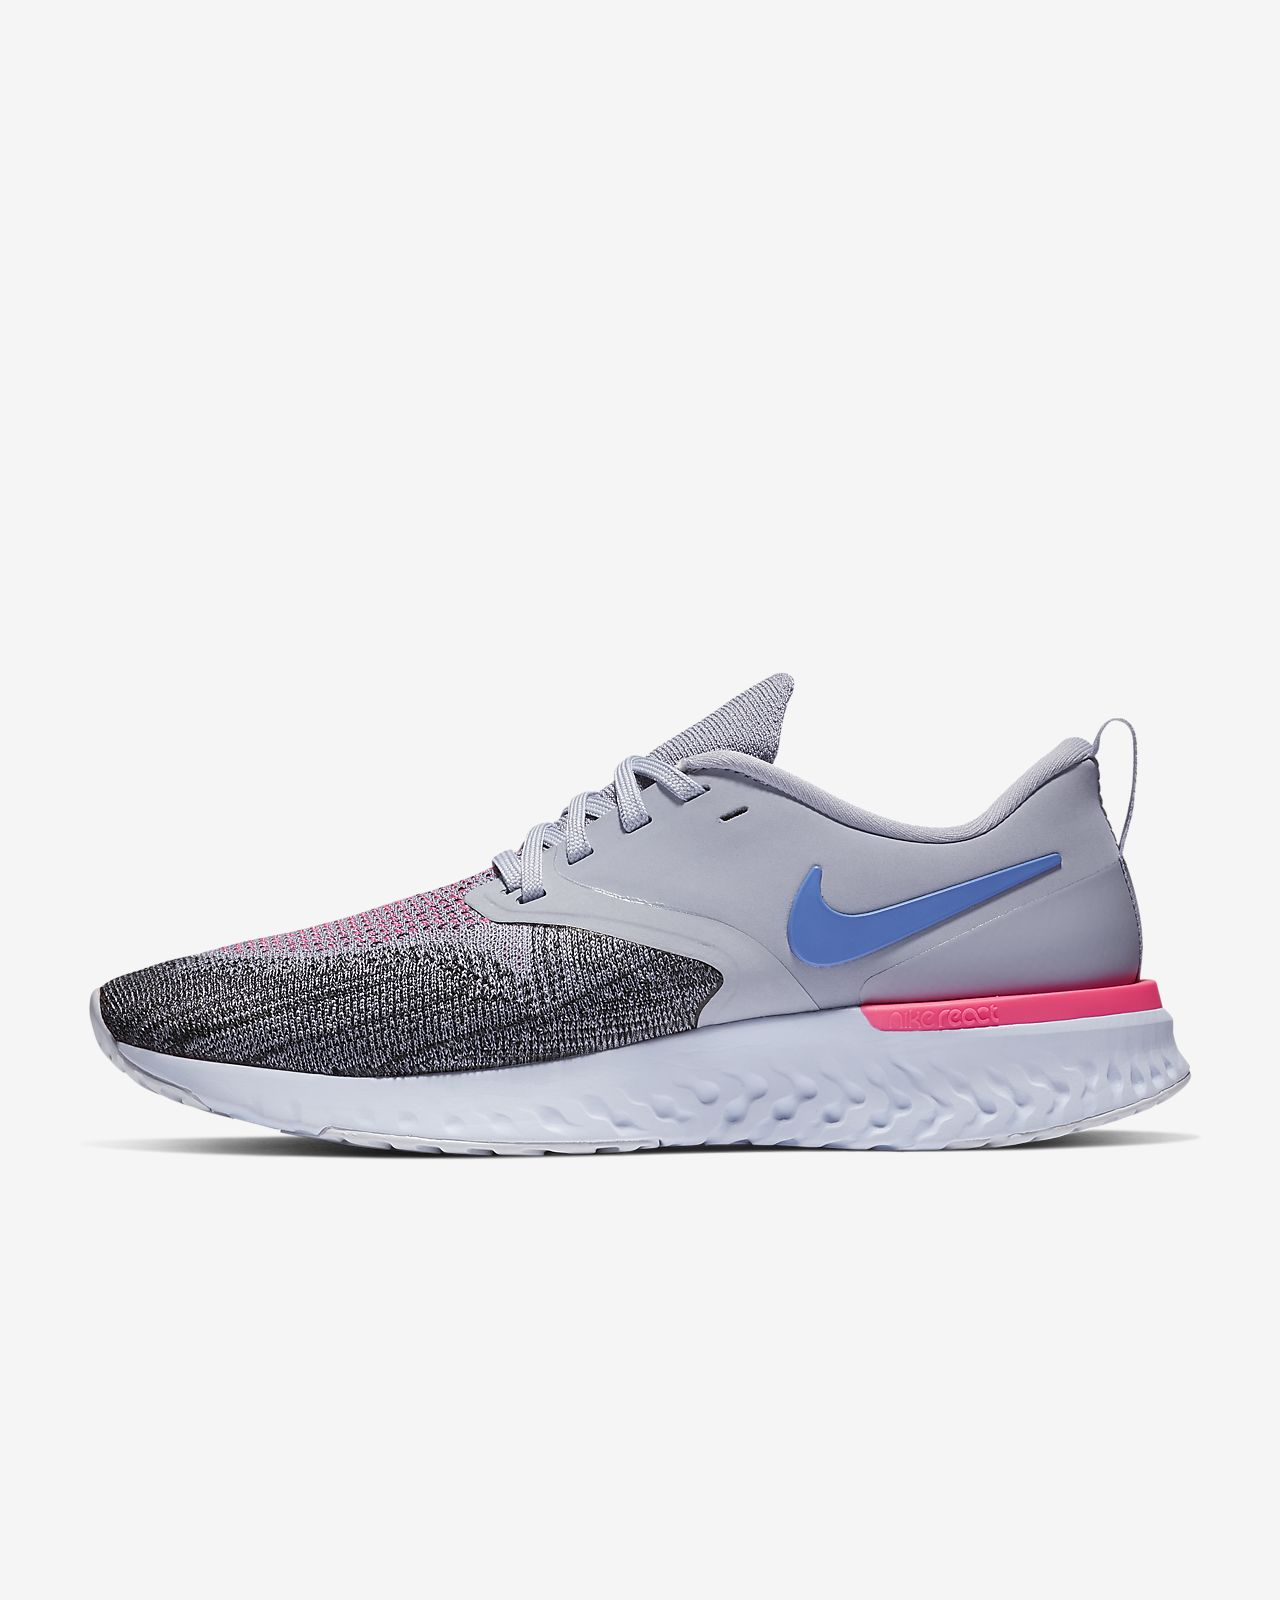 new style 5ee77 22003 ... Nike Odyssey React Flyknit 2 Womens Running Shoe